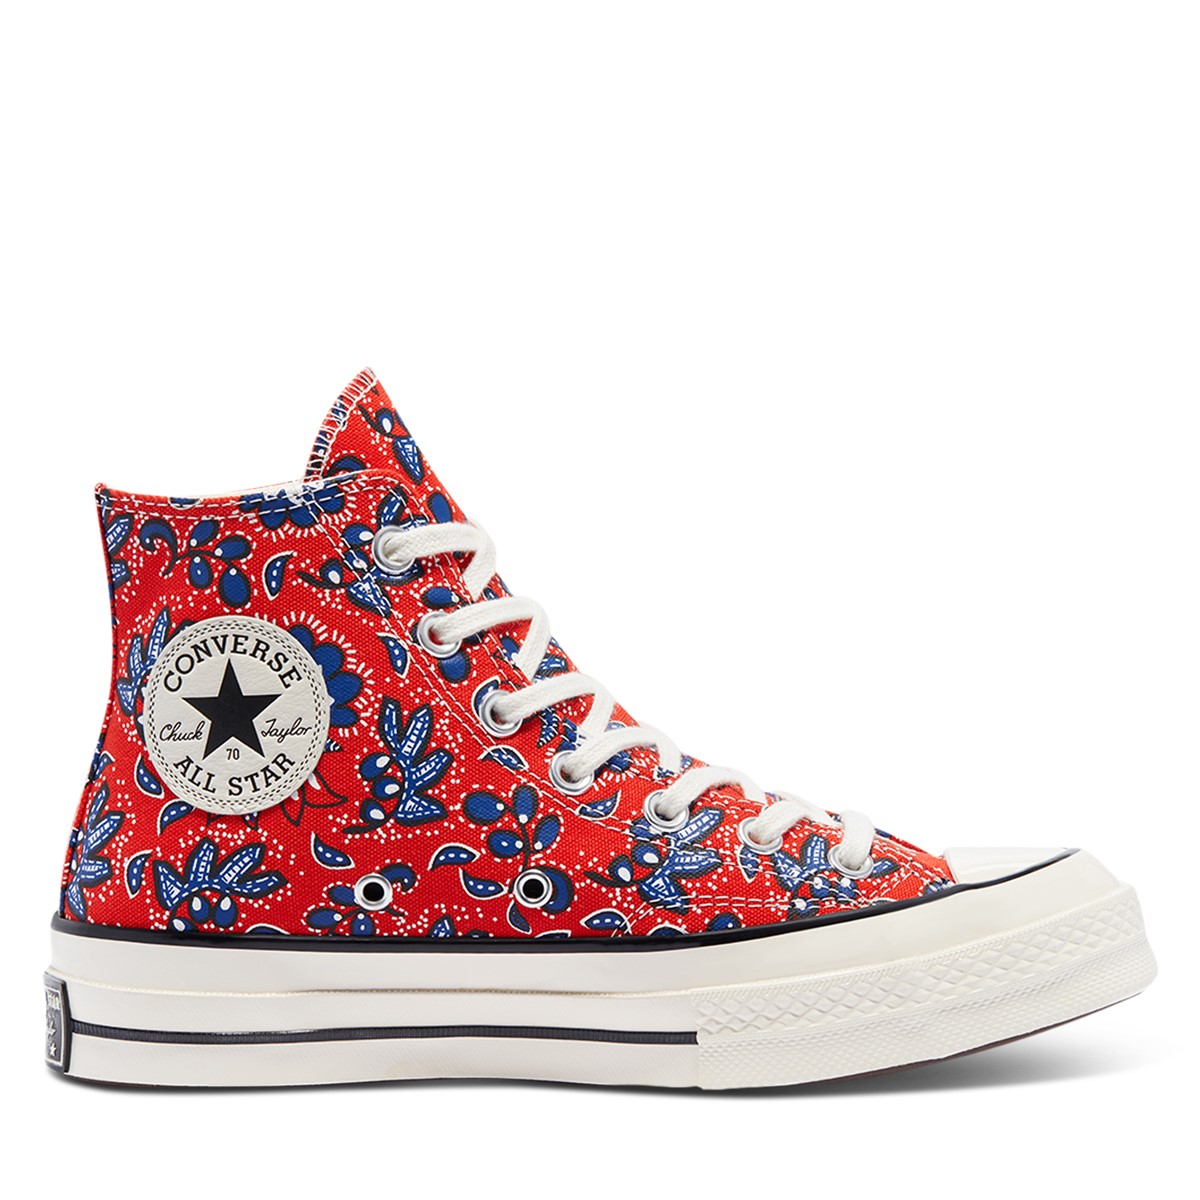 Women's Chuck 70 Hi Sneakers in Red Floral